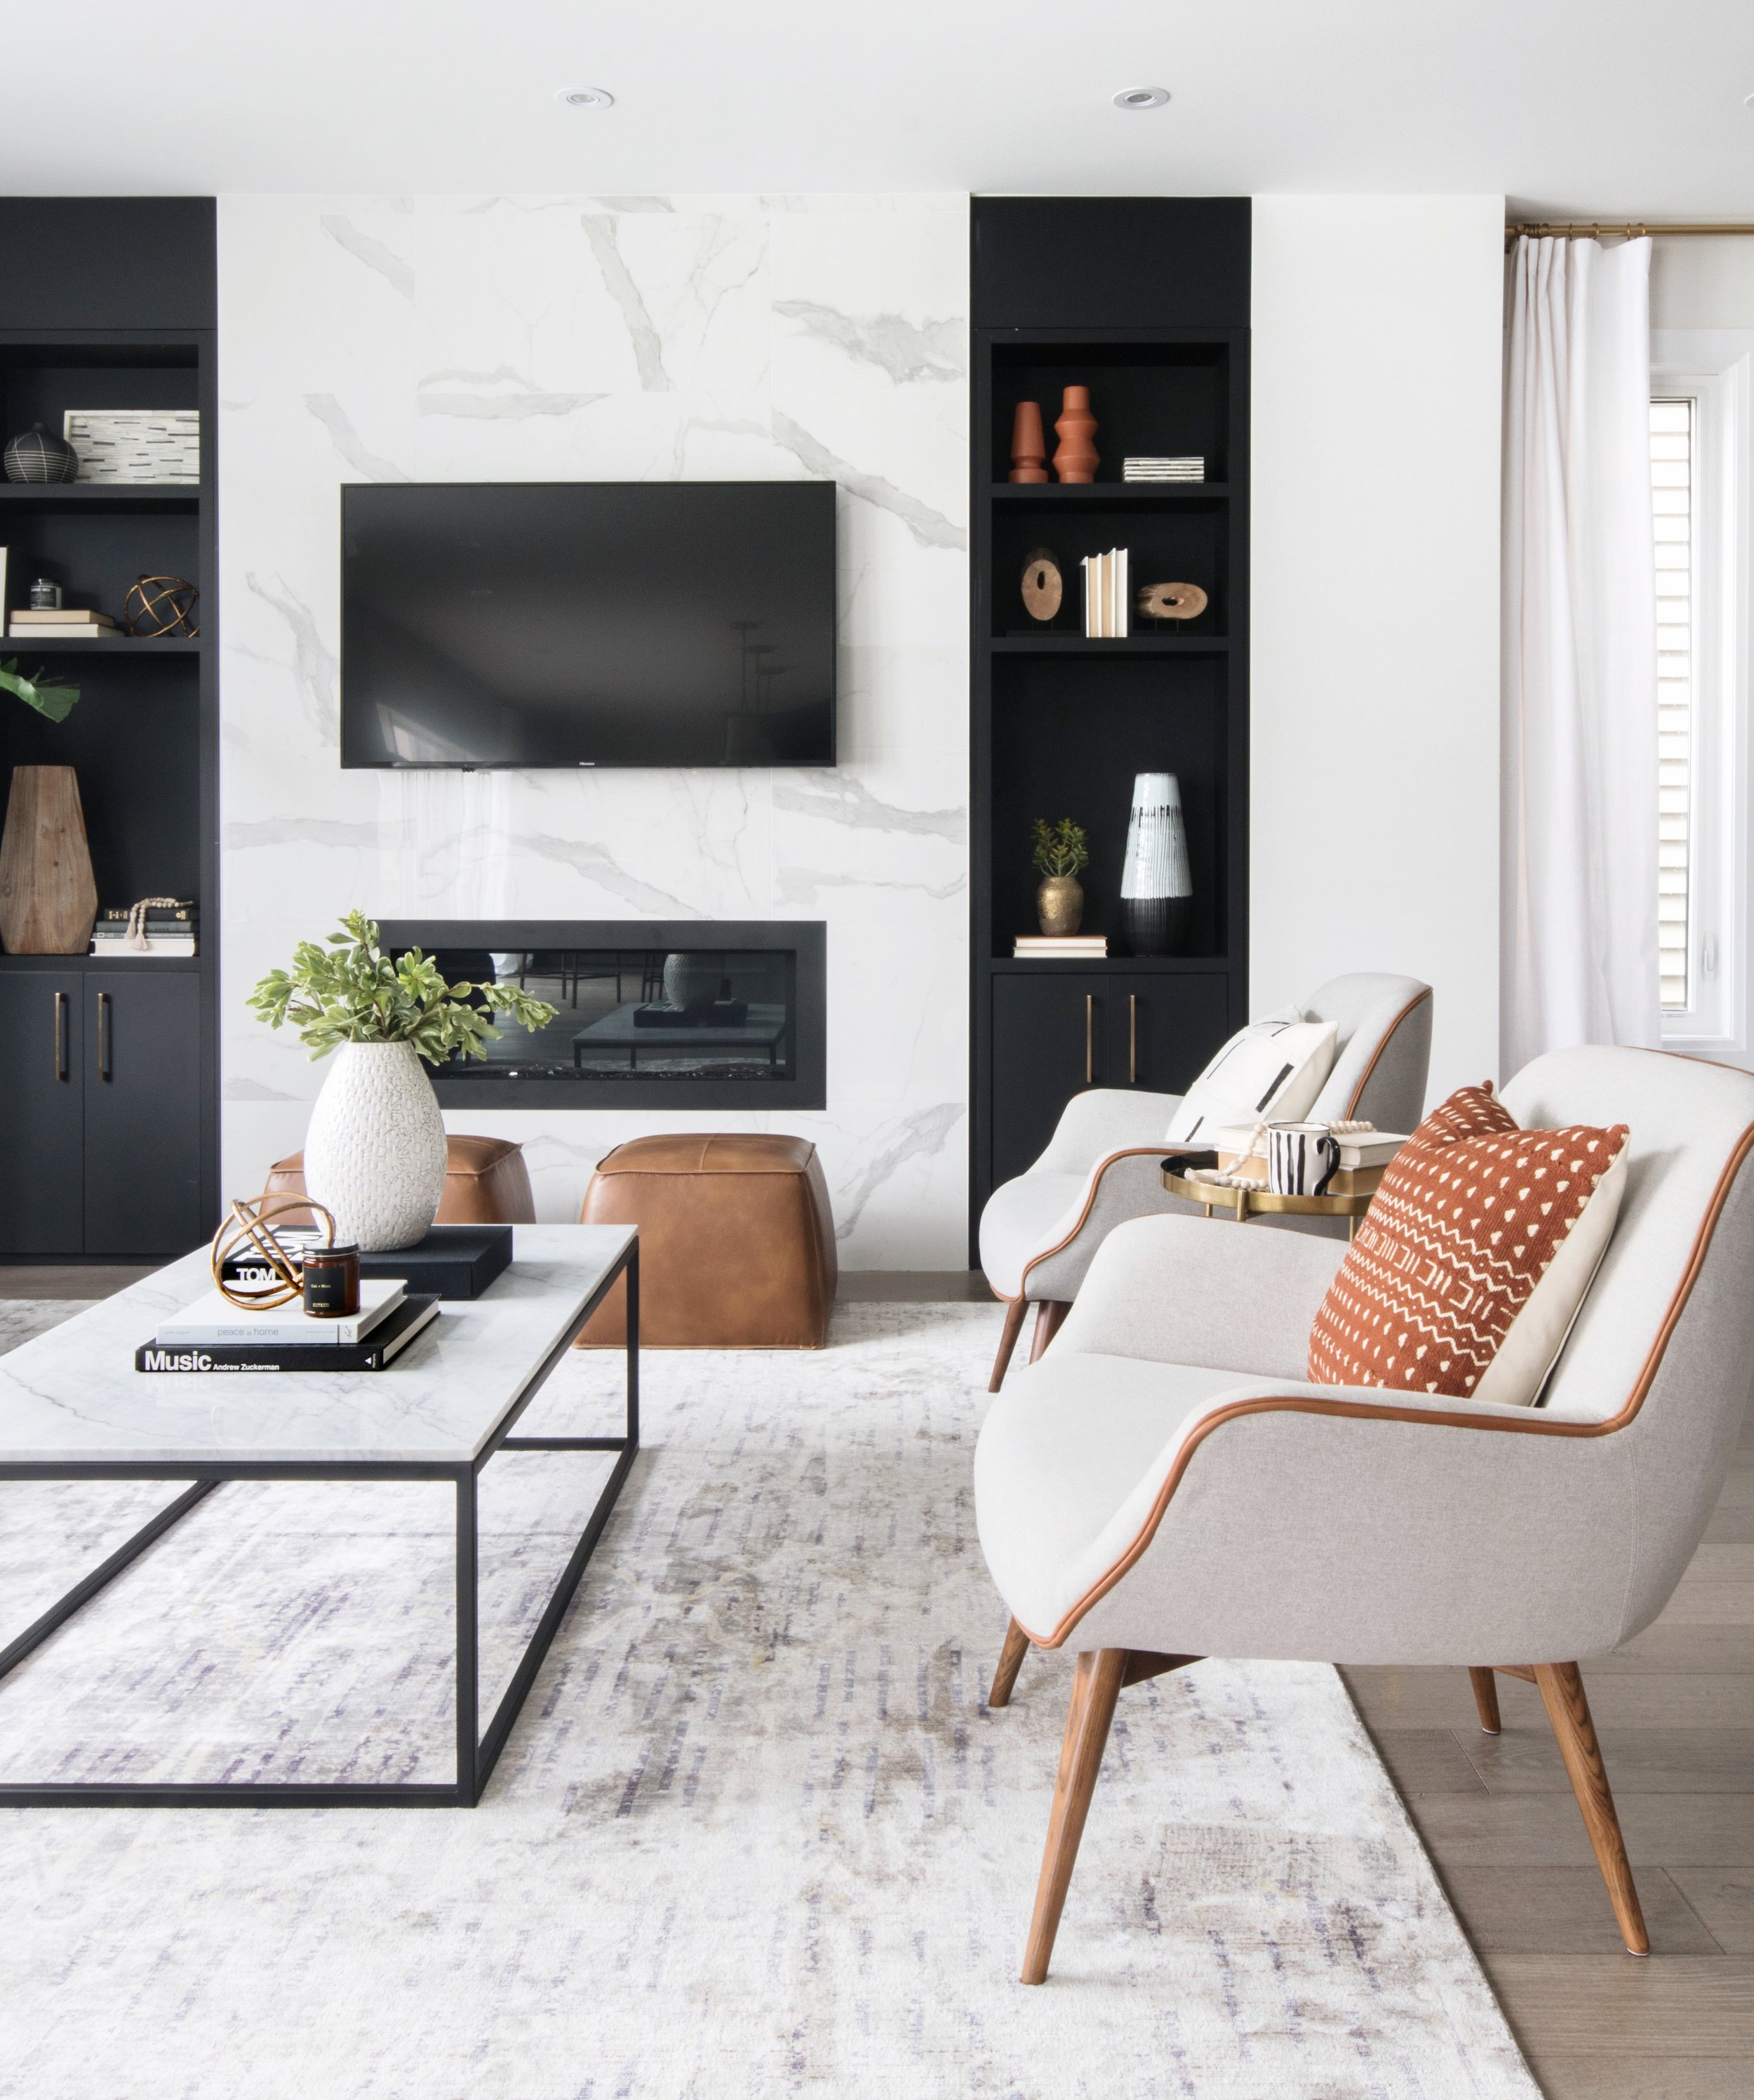 Modern but cozy living room design by Ottawa based interior design firm, Leclair Decor.